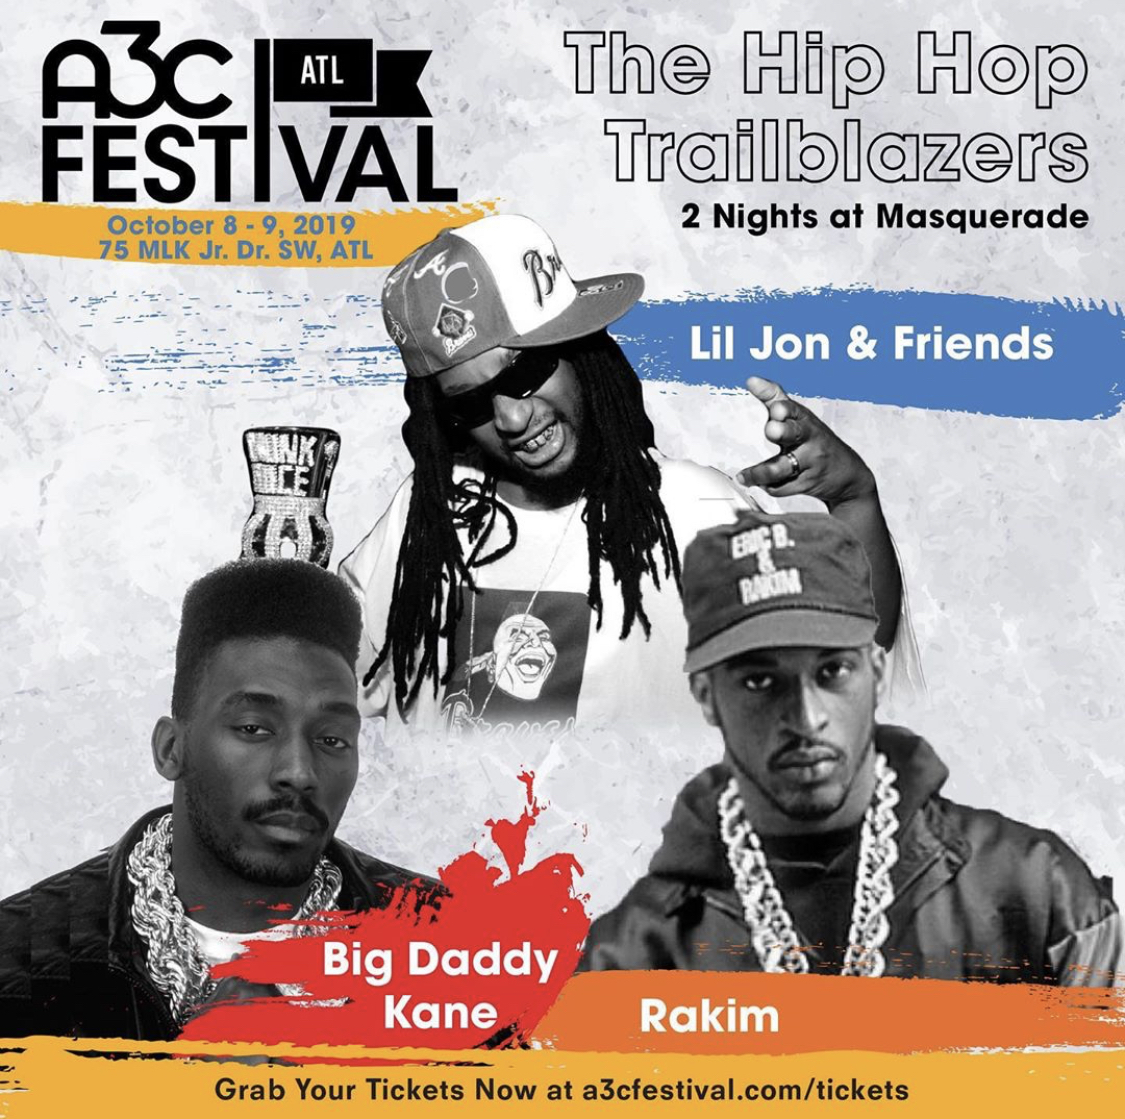 Lil Jon & Friends, Rakim and Big Daddy Kane Announced for A3C Music Festival & Conference's Trailblazer Concert series